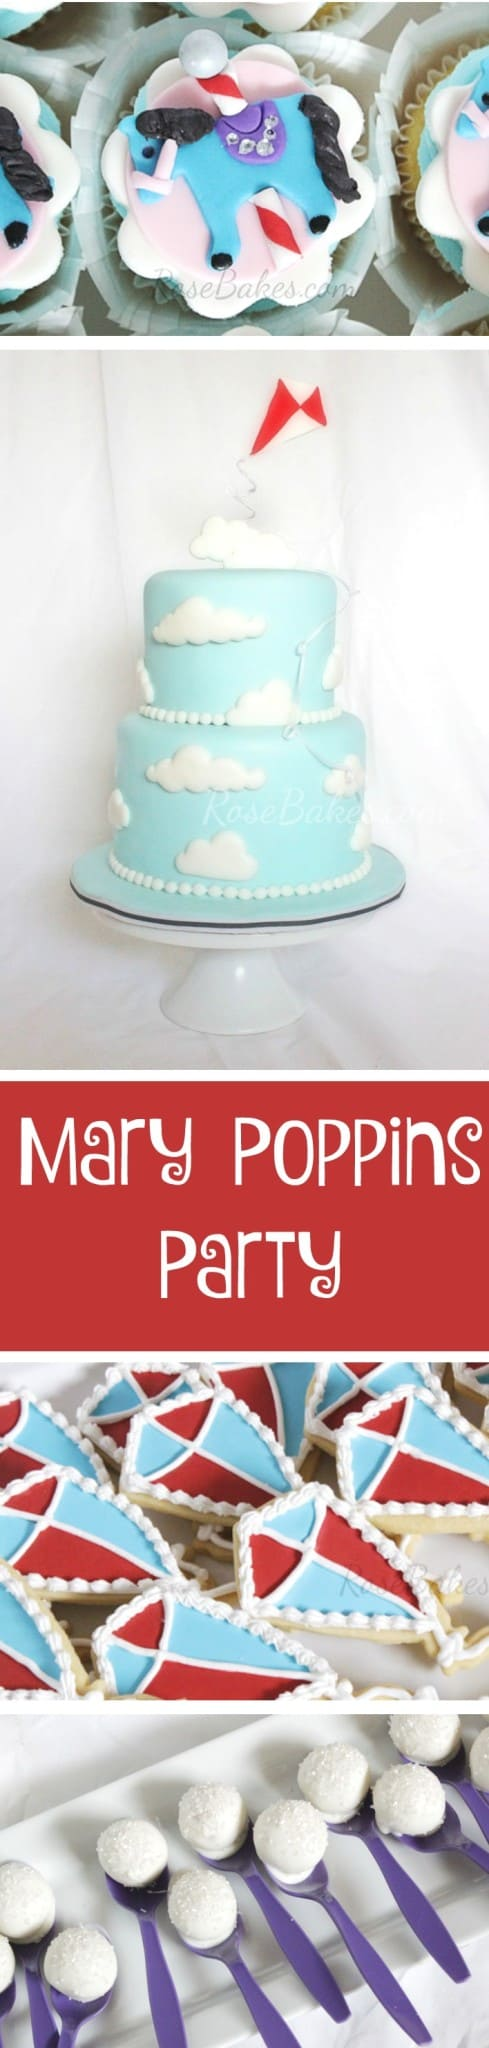 Mary Poppins Party Dessert Table